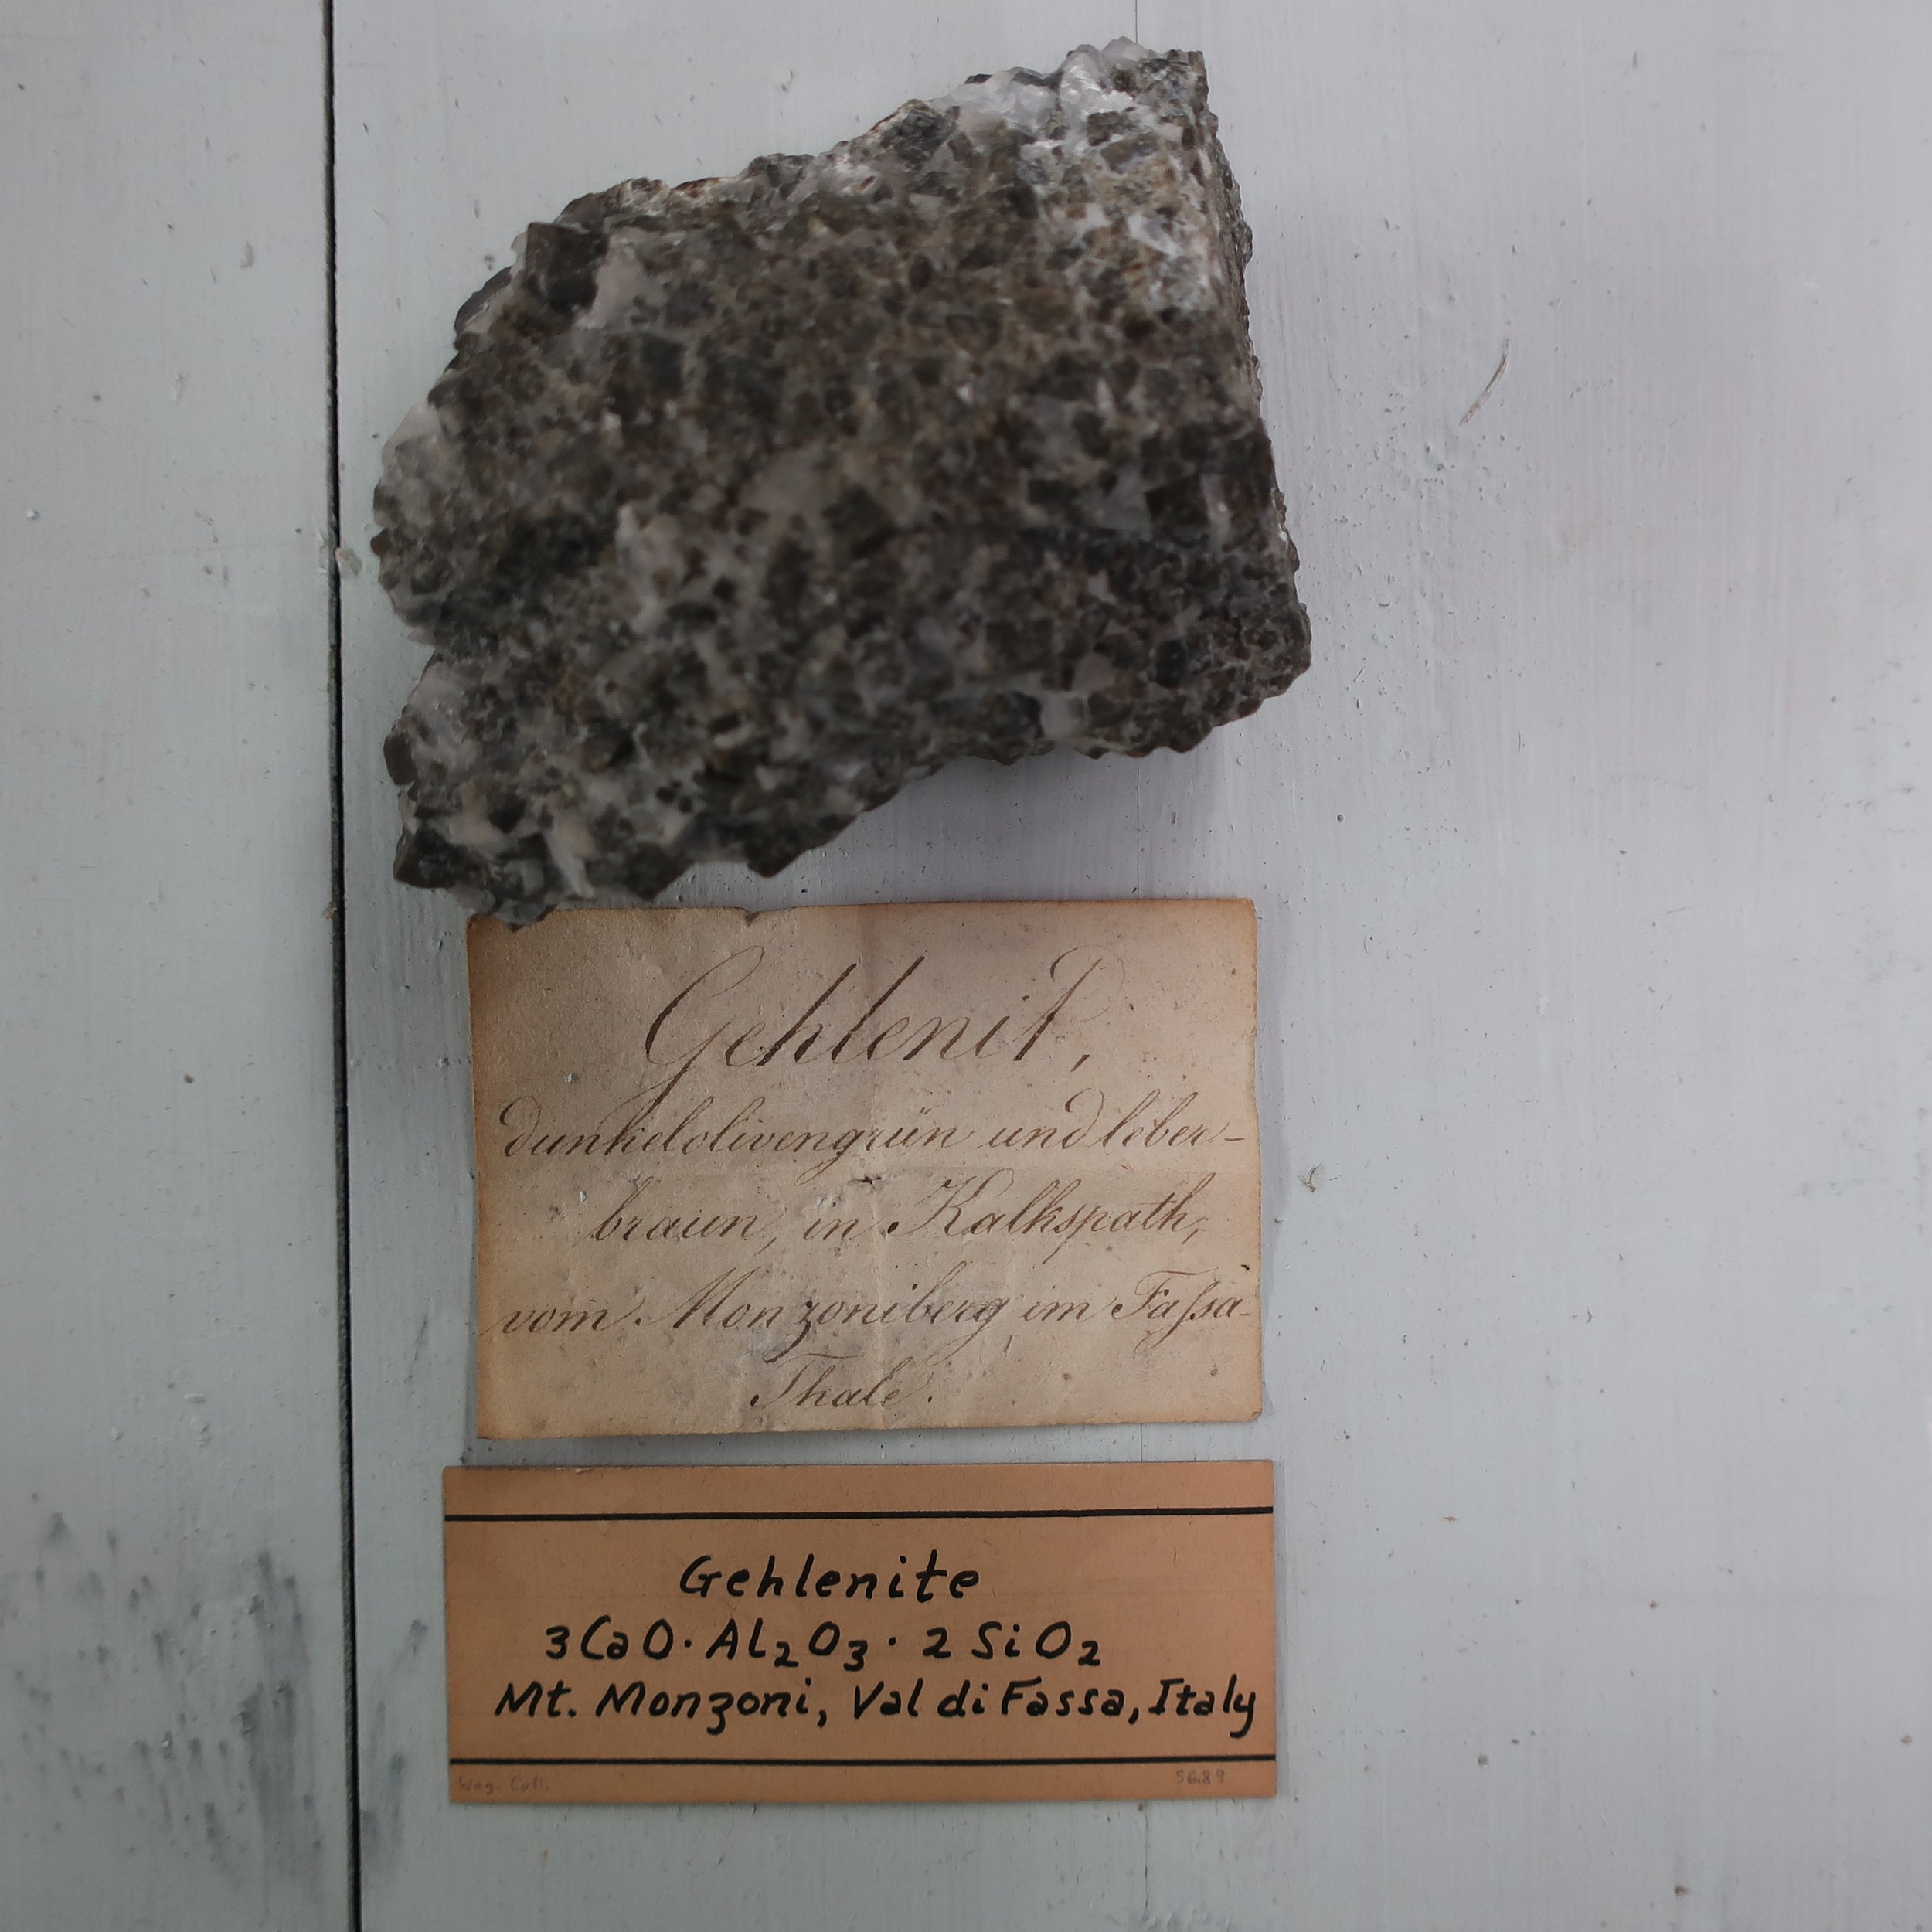 Gehlenite  is a combination of Silica 29, Alumina 24, Lime 35, Iron 6. It occurs in right square prisms and massive. It is usually grey, but frequently, has a greenish or yellowish tinge. Surface commonly rough and dull, it is found in the valley of Fassa, Tyrol.